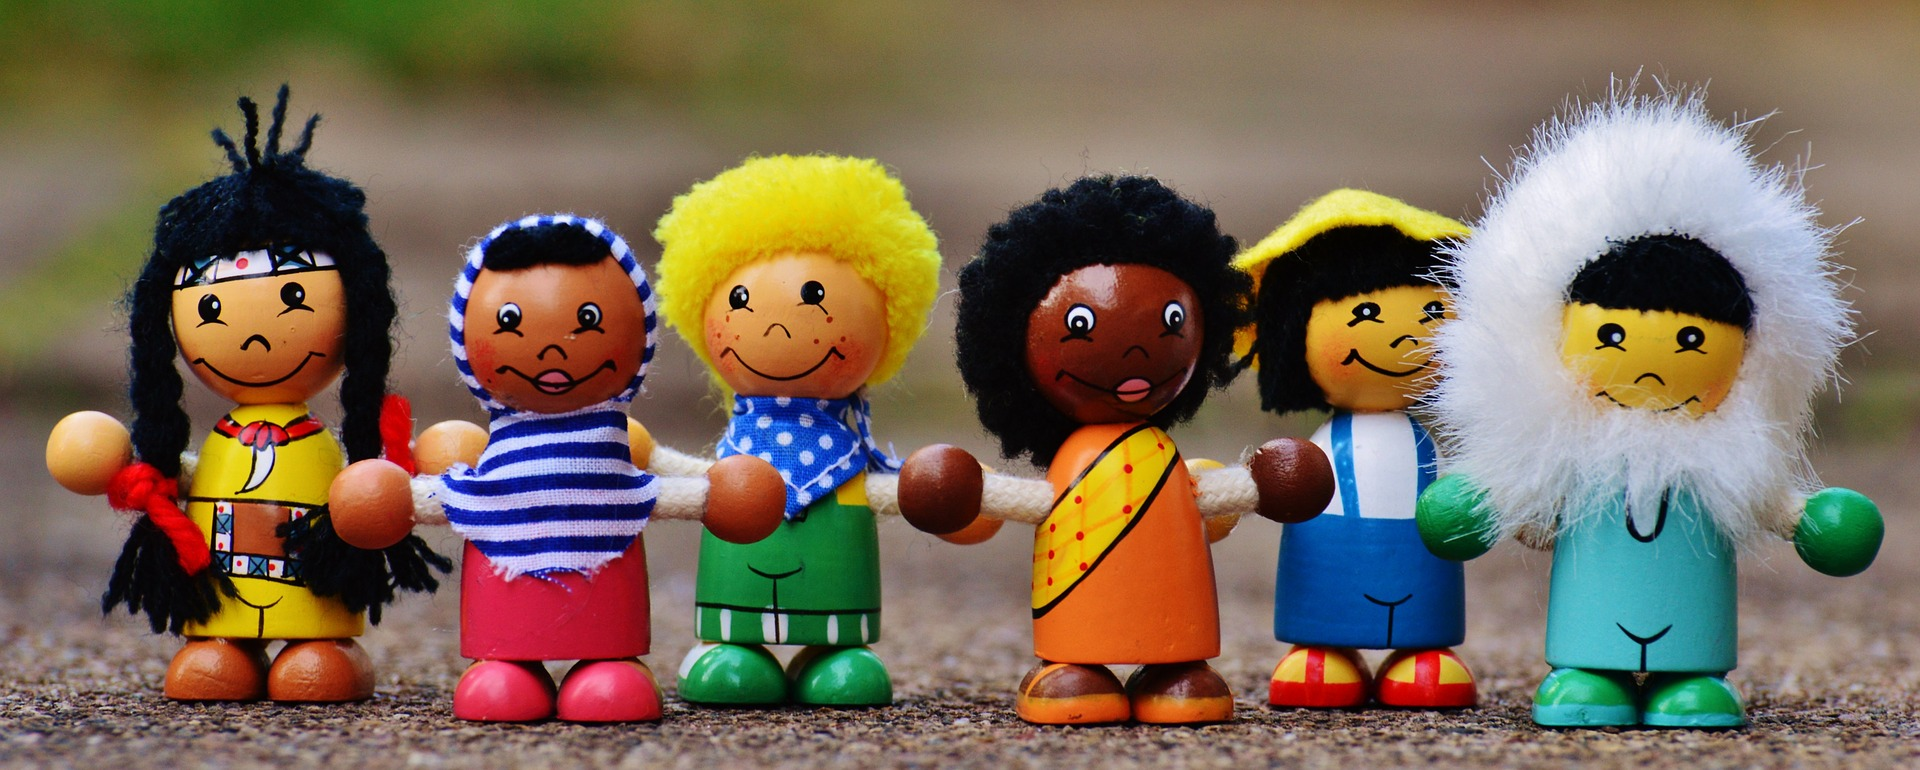 Different nationalities little play figures